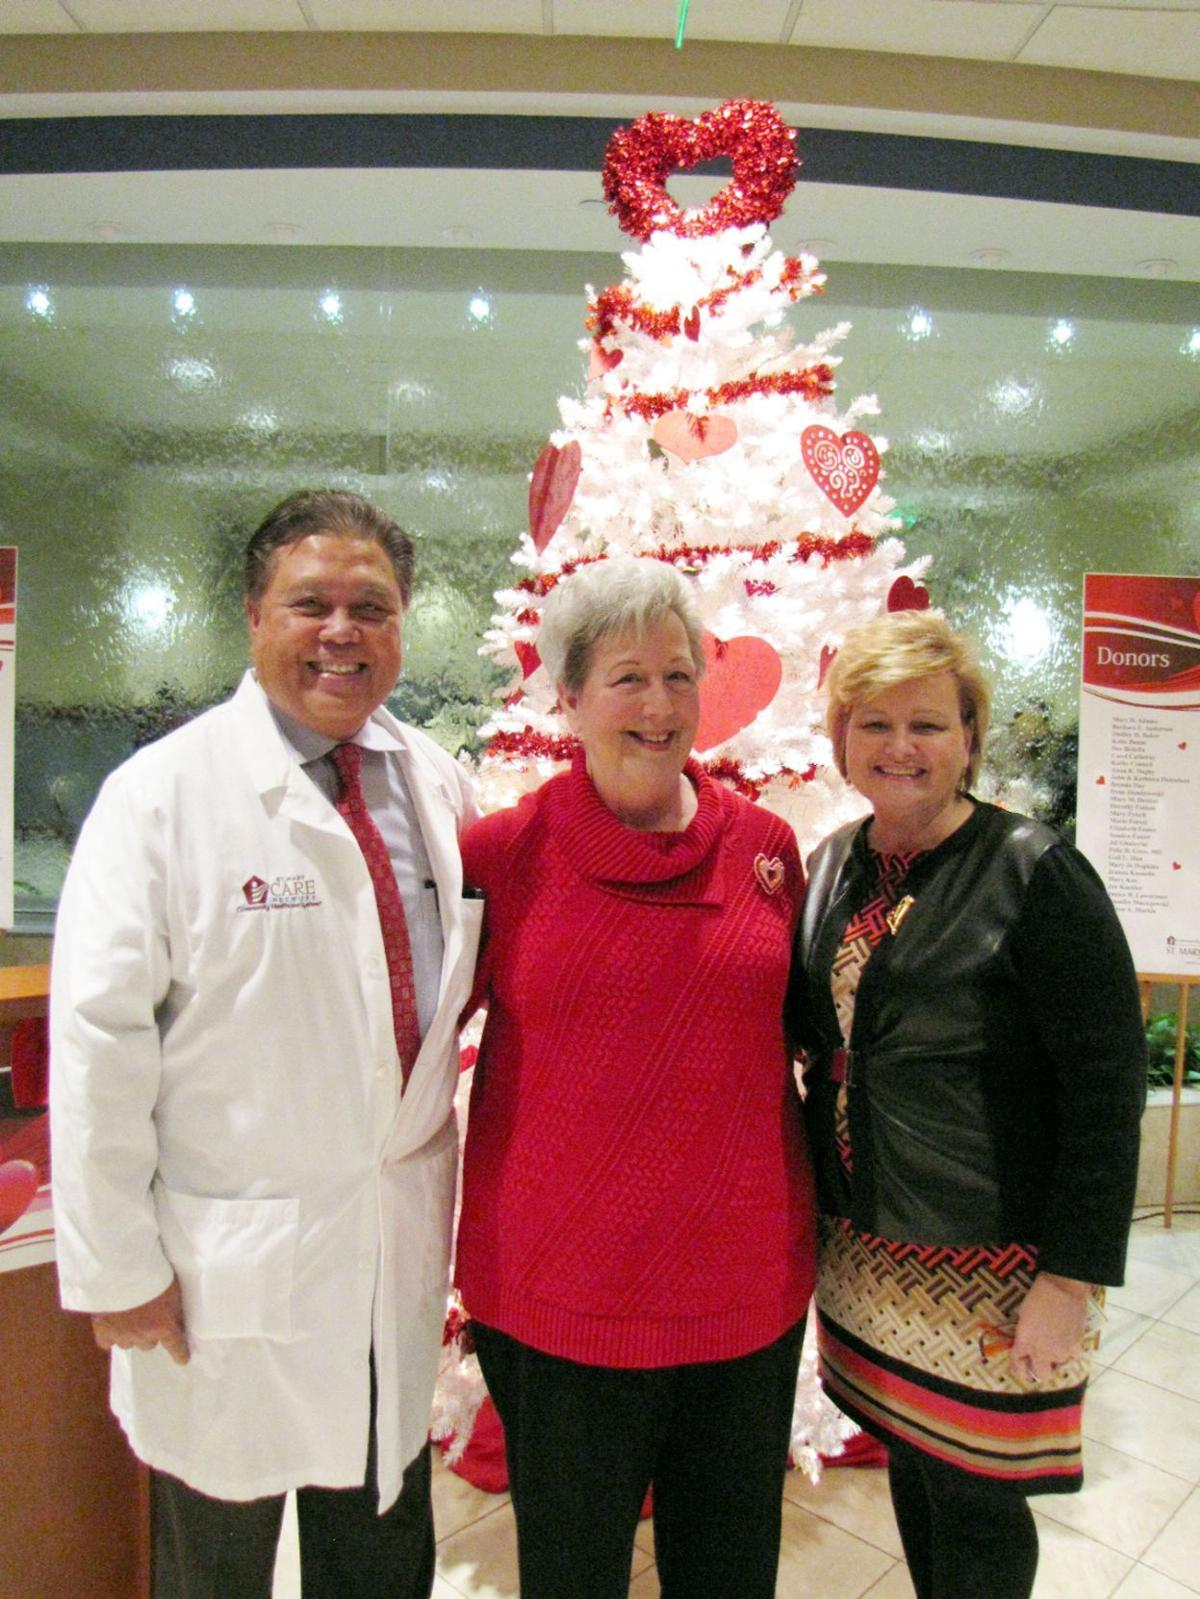 Community Healthcare System offers programs that bring hope and health to others